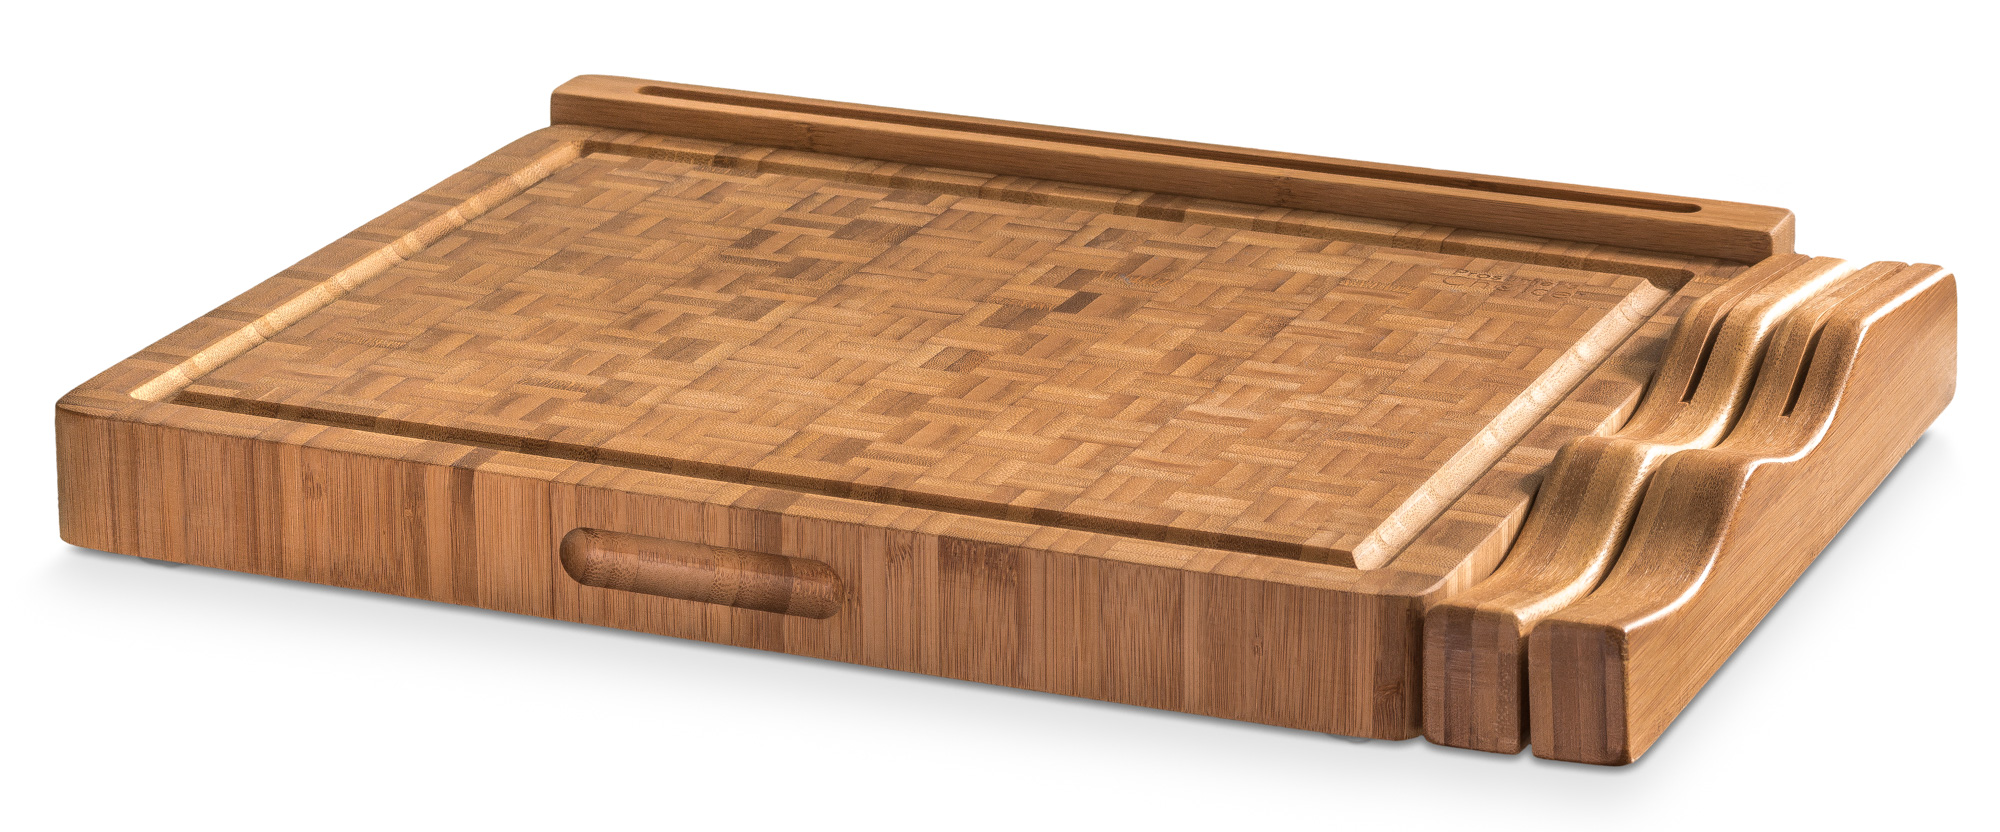 end grain bamboo cutting board workstation with juice trap, Kitchen design